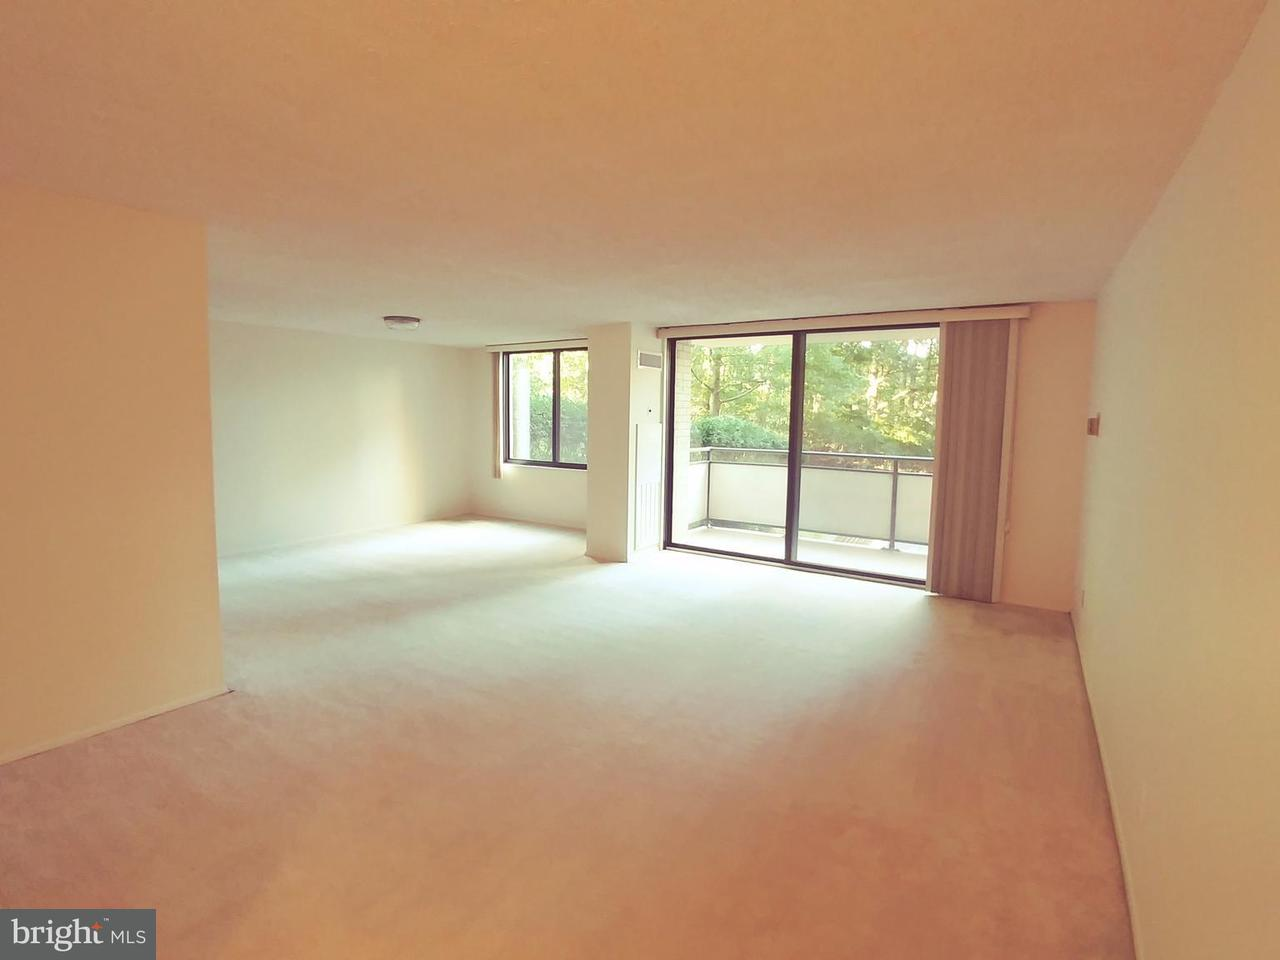 Additional photo for property listing at 5225 Pooks Hill Rd #104n  Bethesda, Maryland 20814 United States